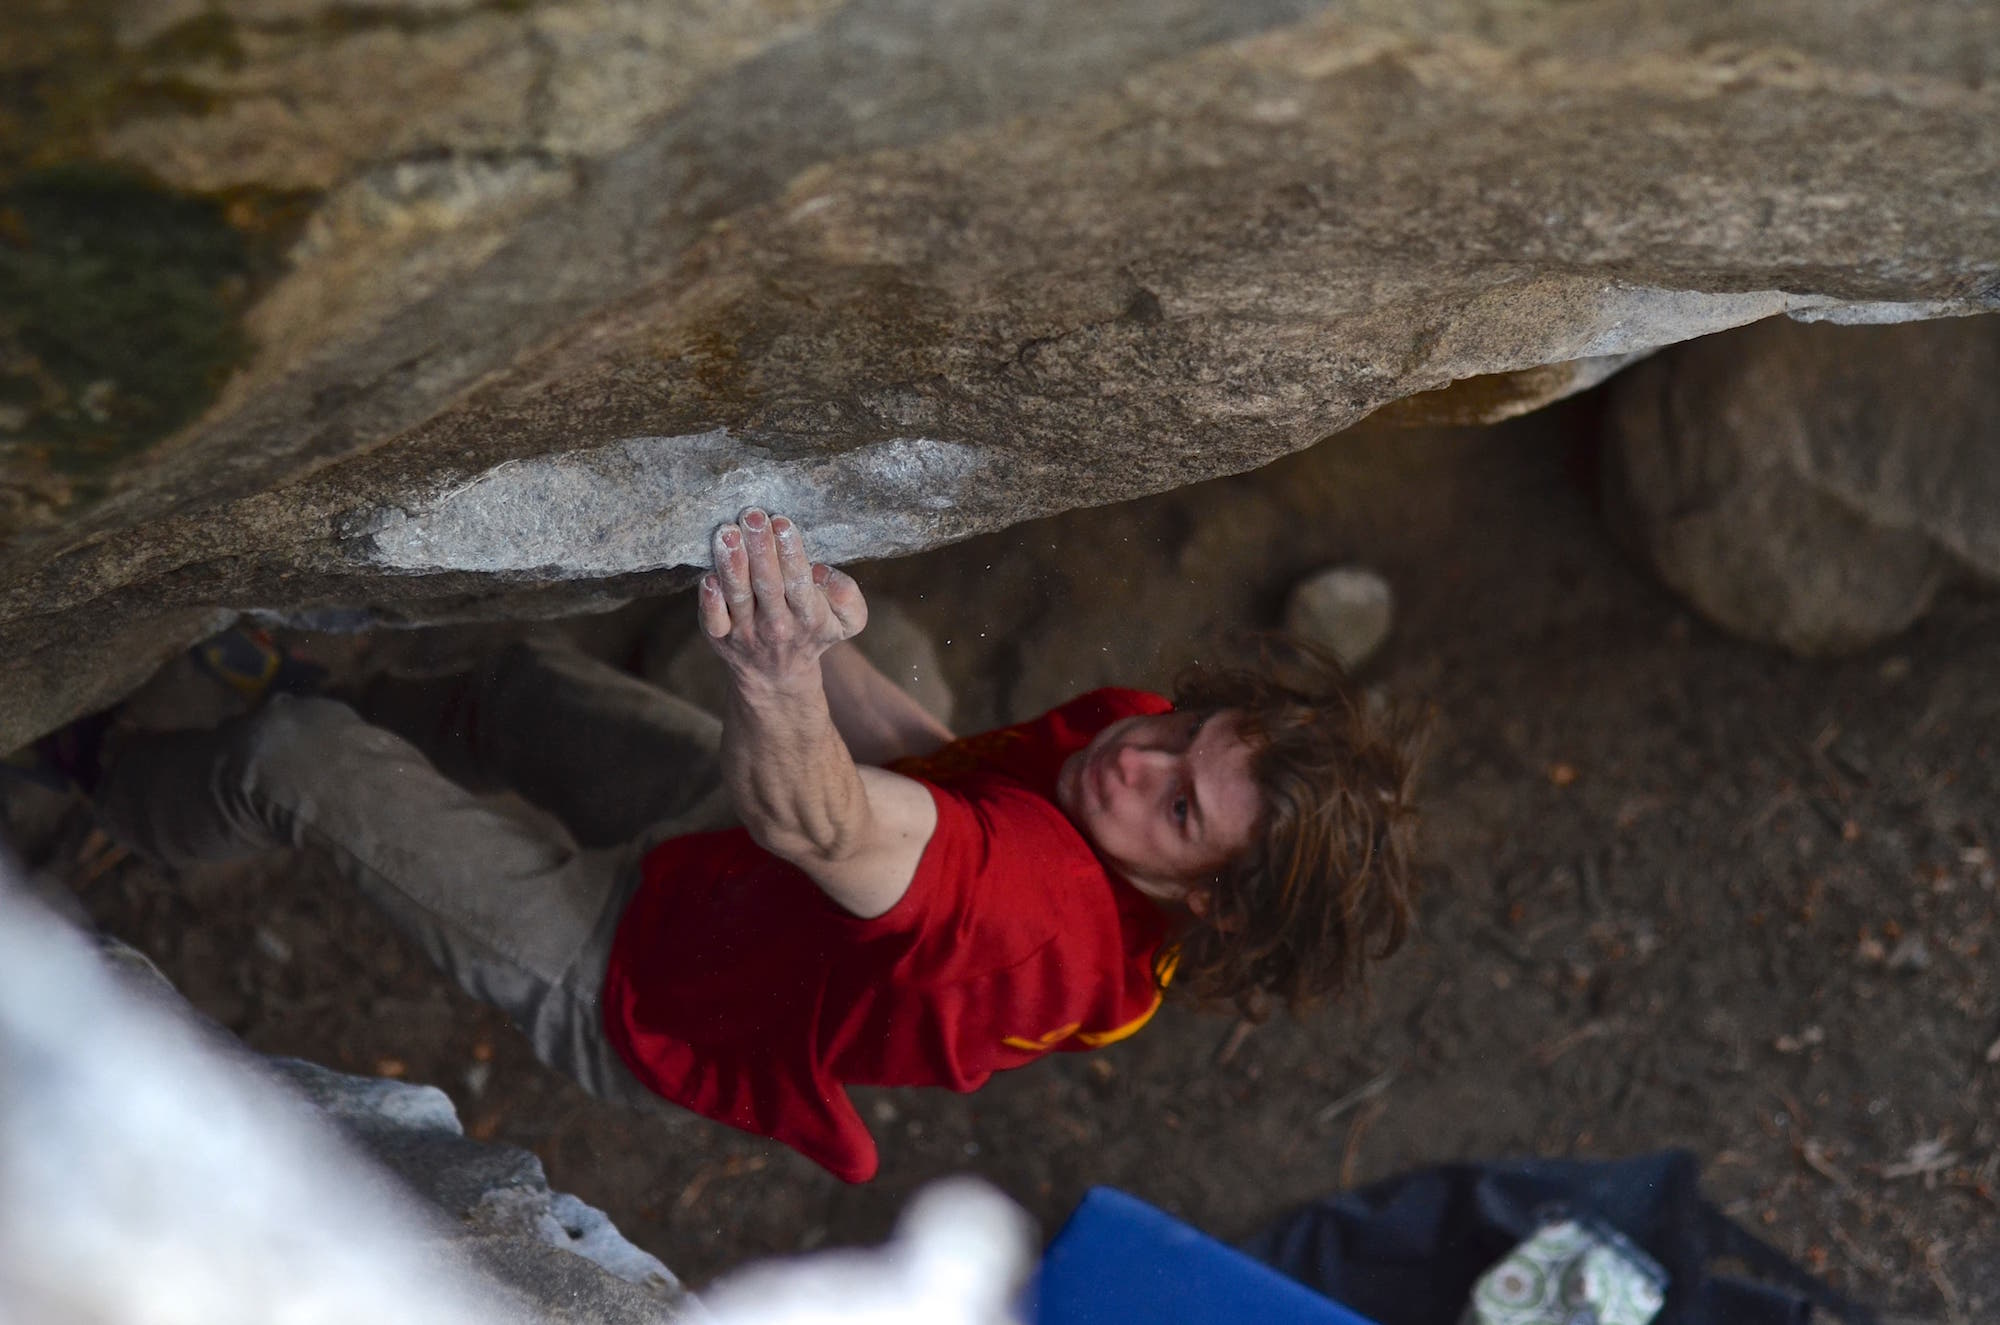 FrictionLabs Athlete Sam Rothstein climbing up a challenging boulder